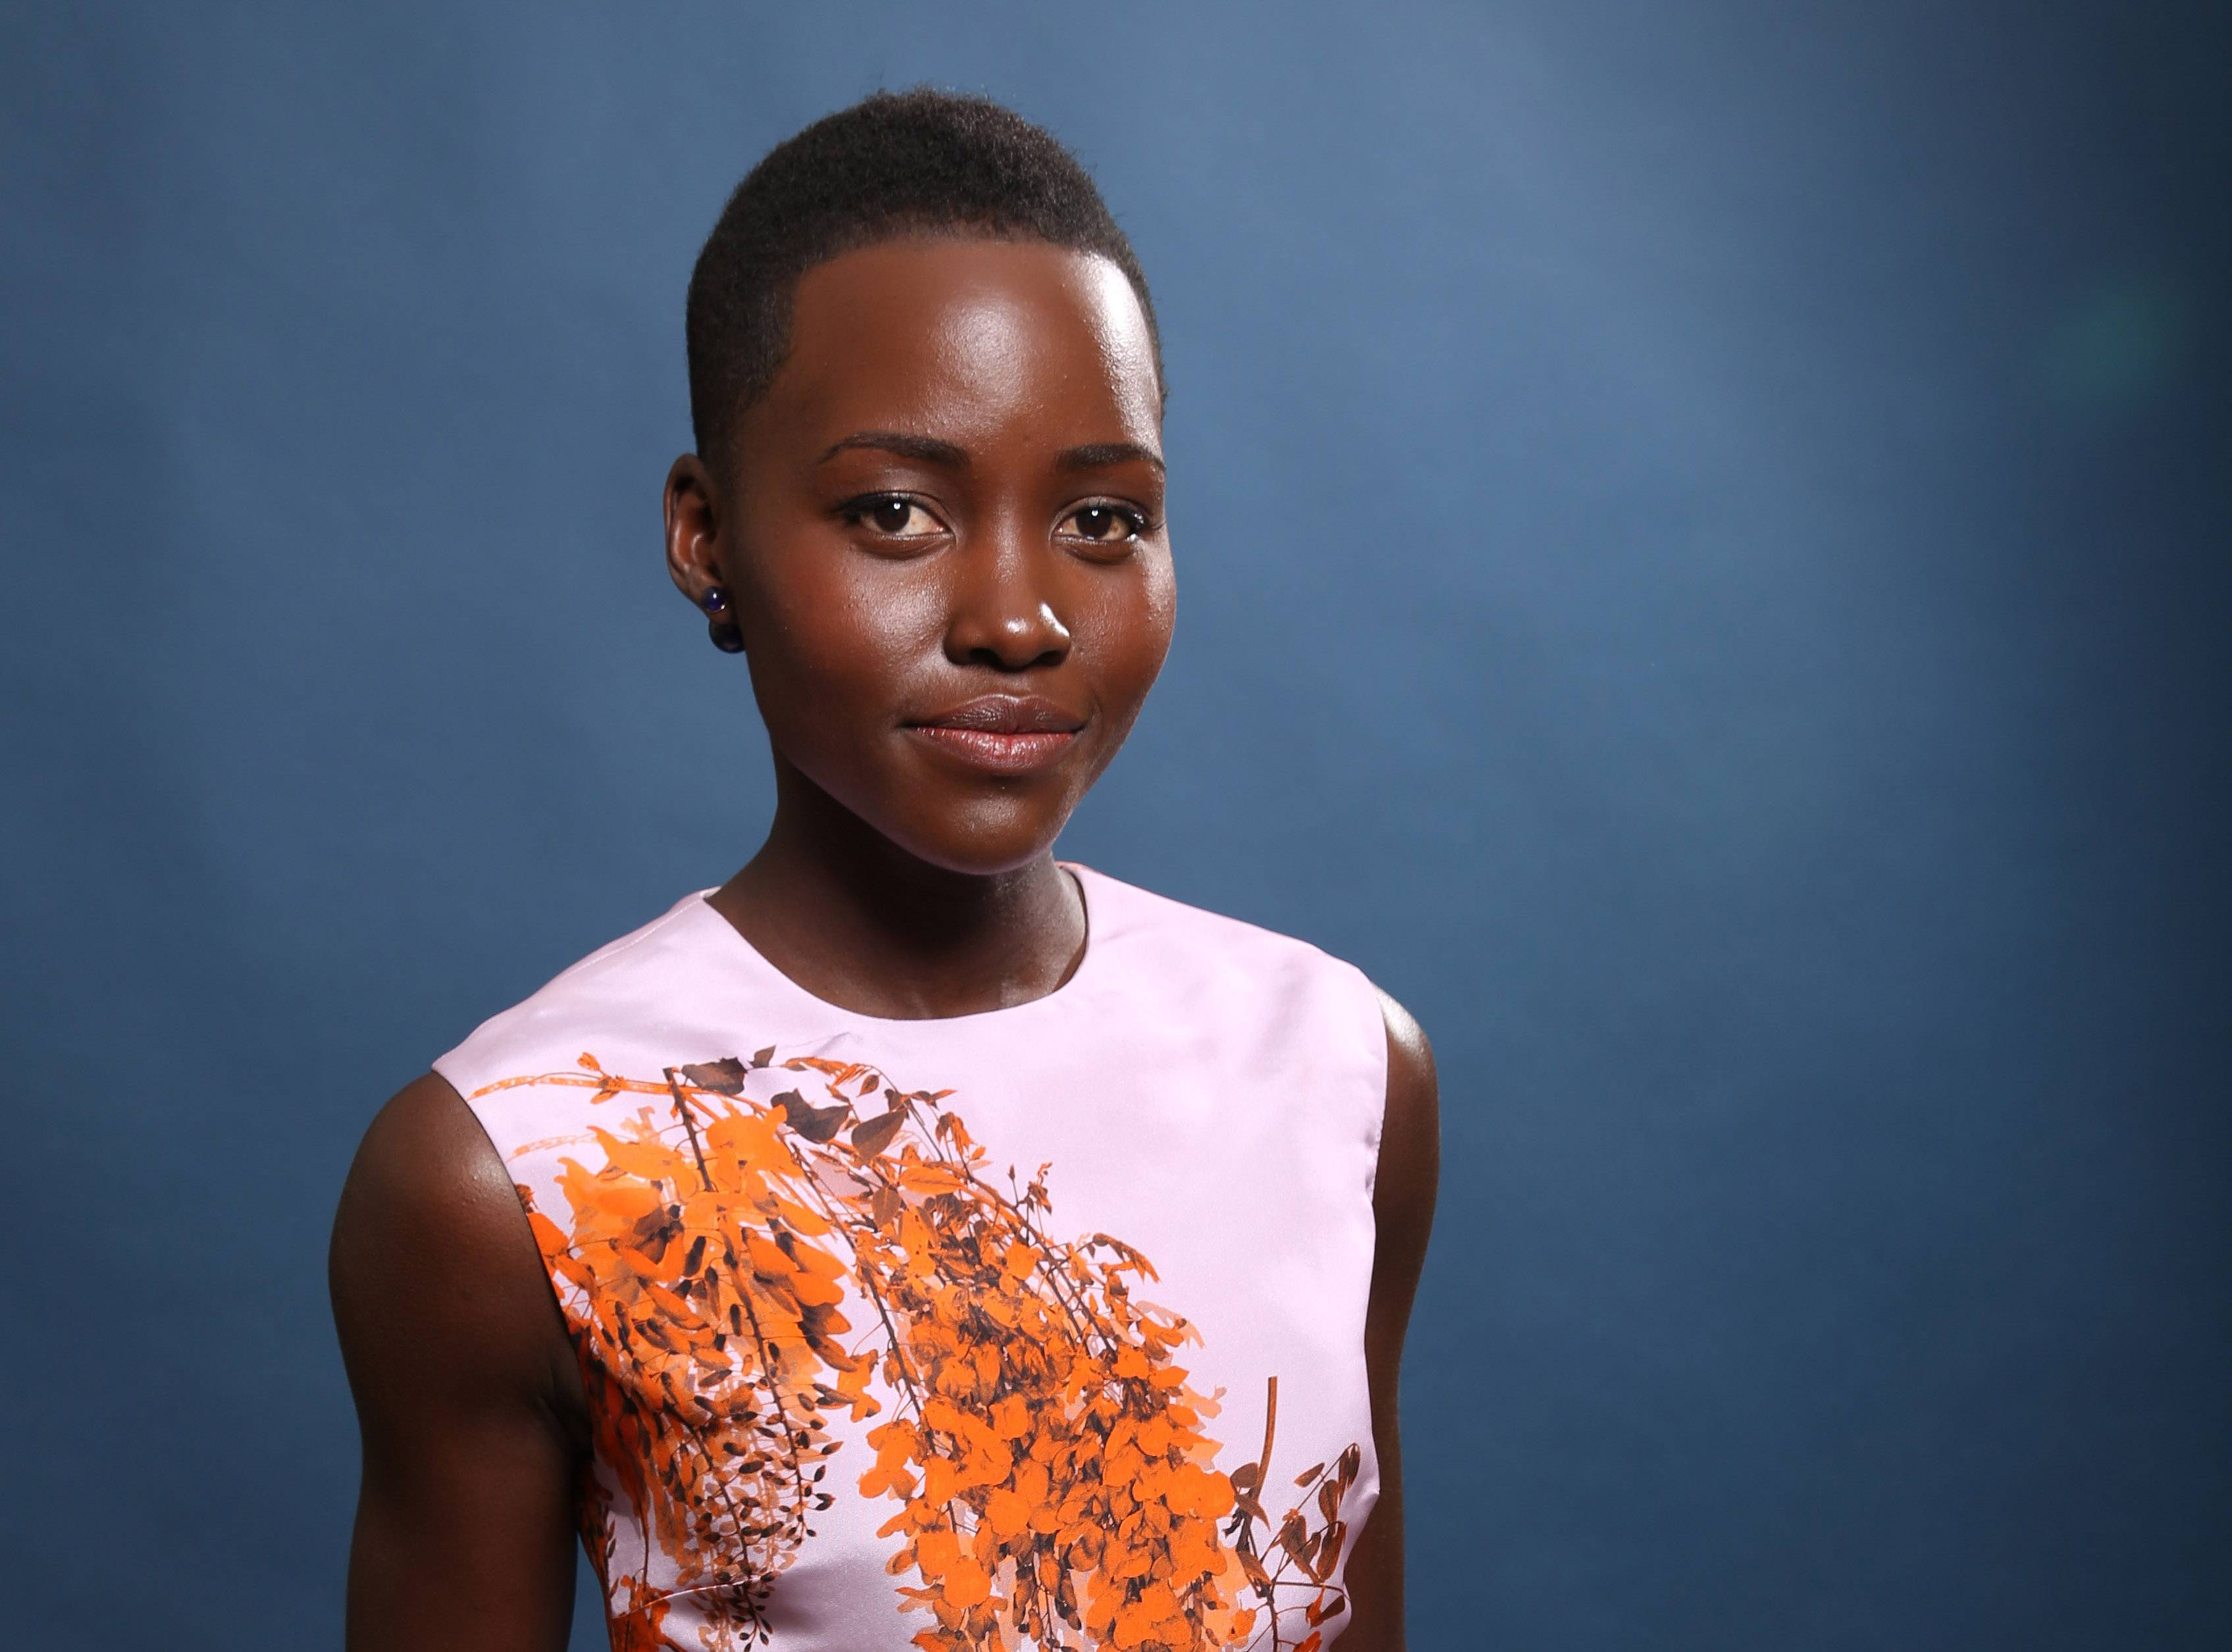 """I try to keep my regimen -- rest, water, eat well, workout -- so that when this is all over, I don't experience a total hangover,"" says Lupita Nyong'o."